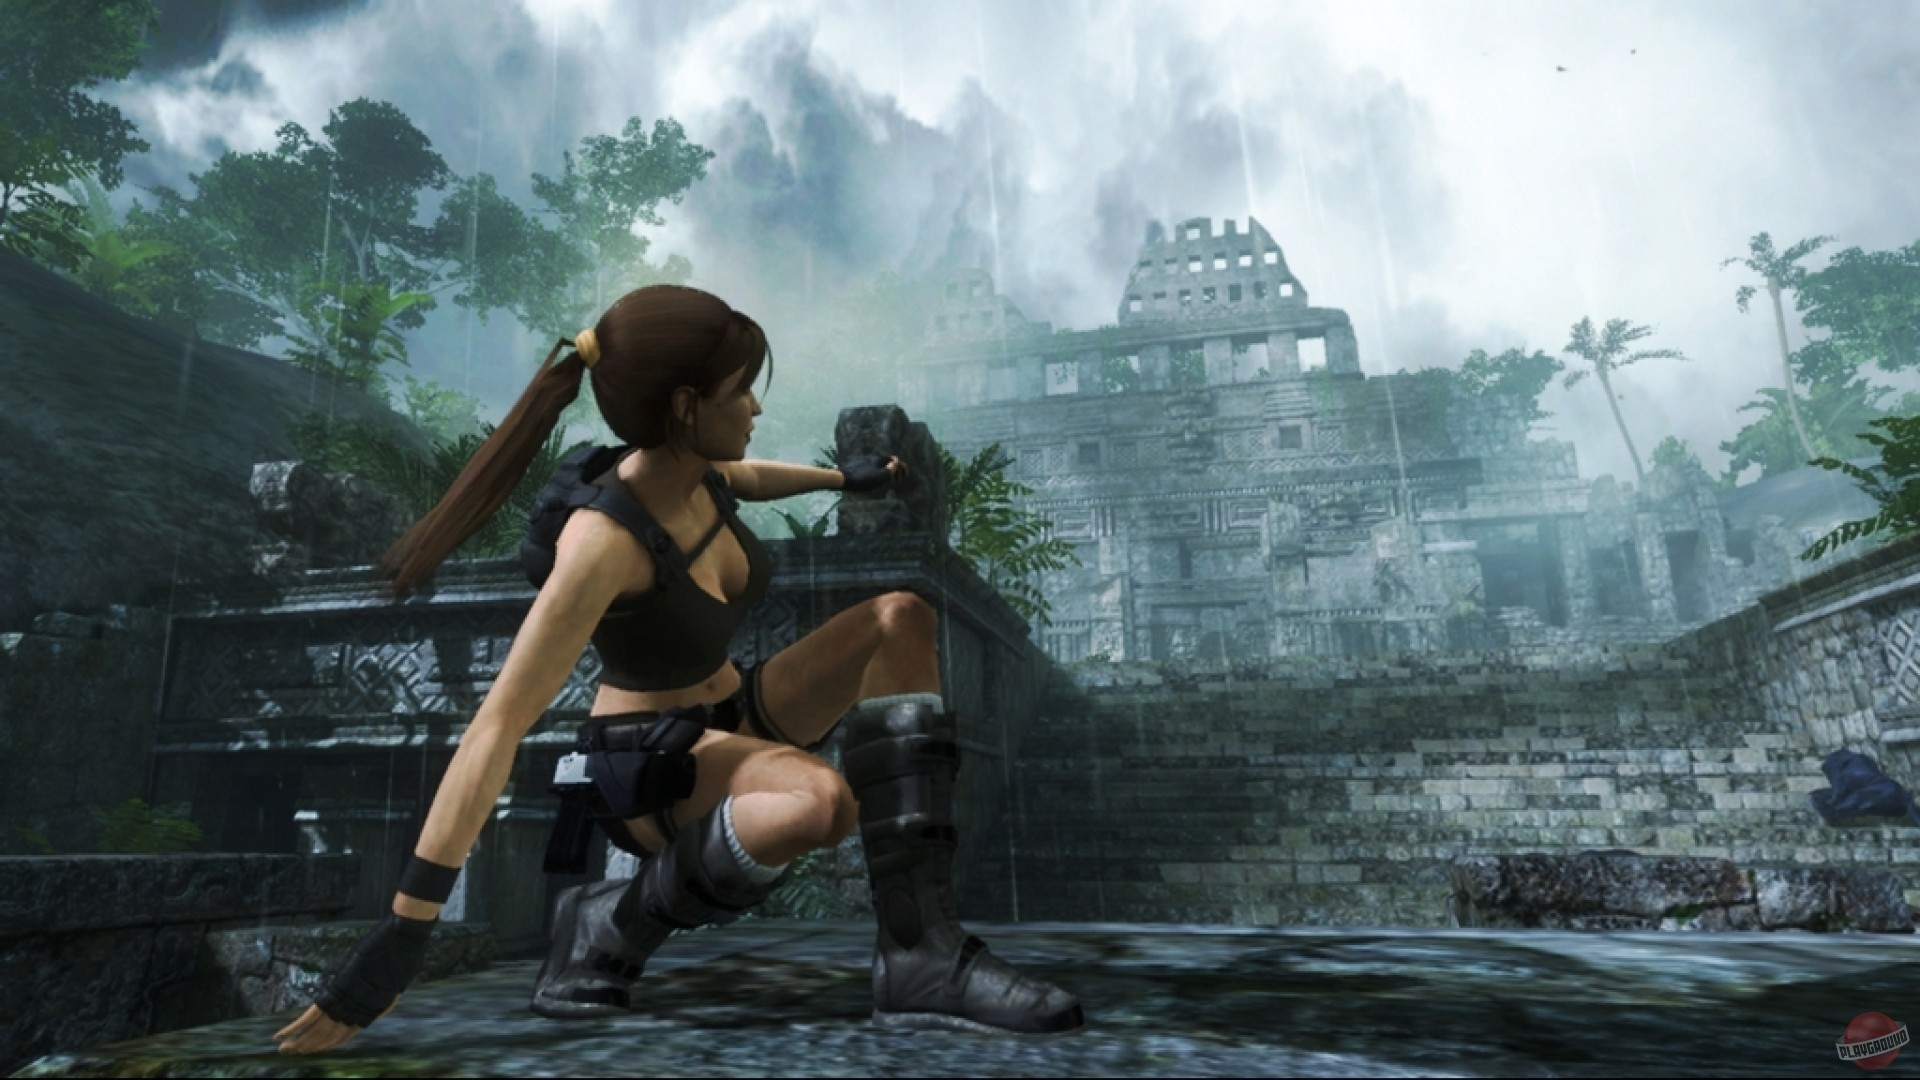 Tomb raider underworld bigger boivs mod fucking pic